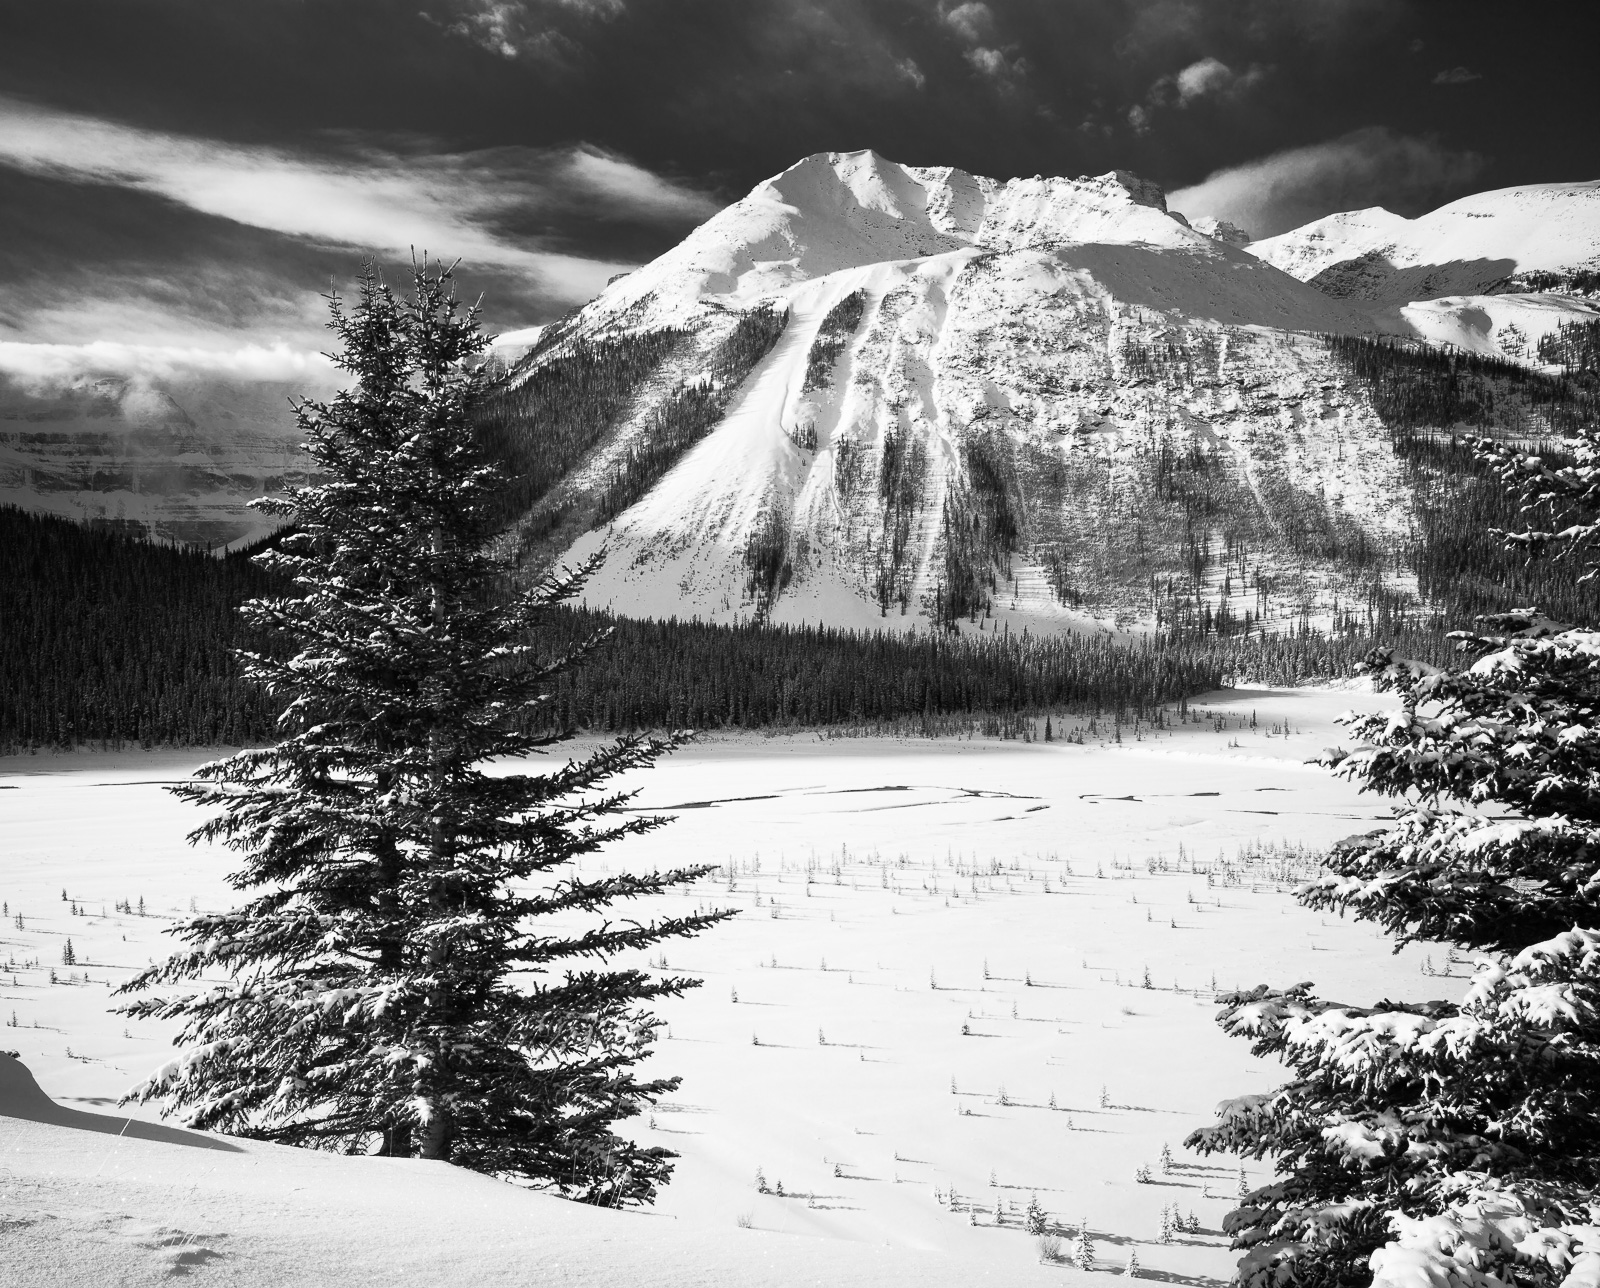 Trailing Trees, Black and White, Canada, Horizontal, Mountain, Mountains, Volcano, landscape, snow, winter, BW, B&W, Black, White, photo